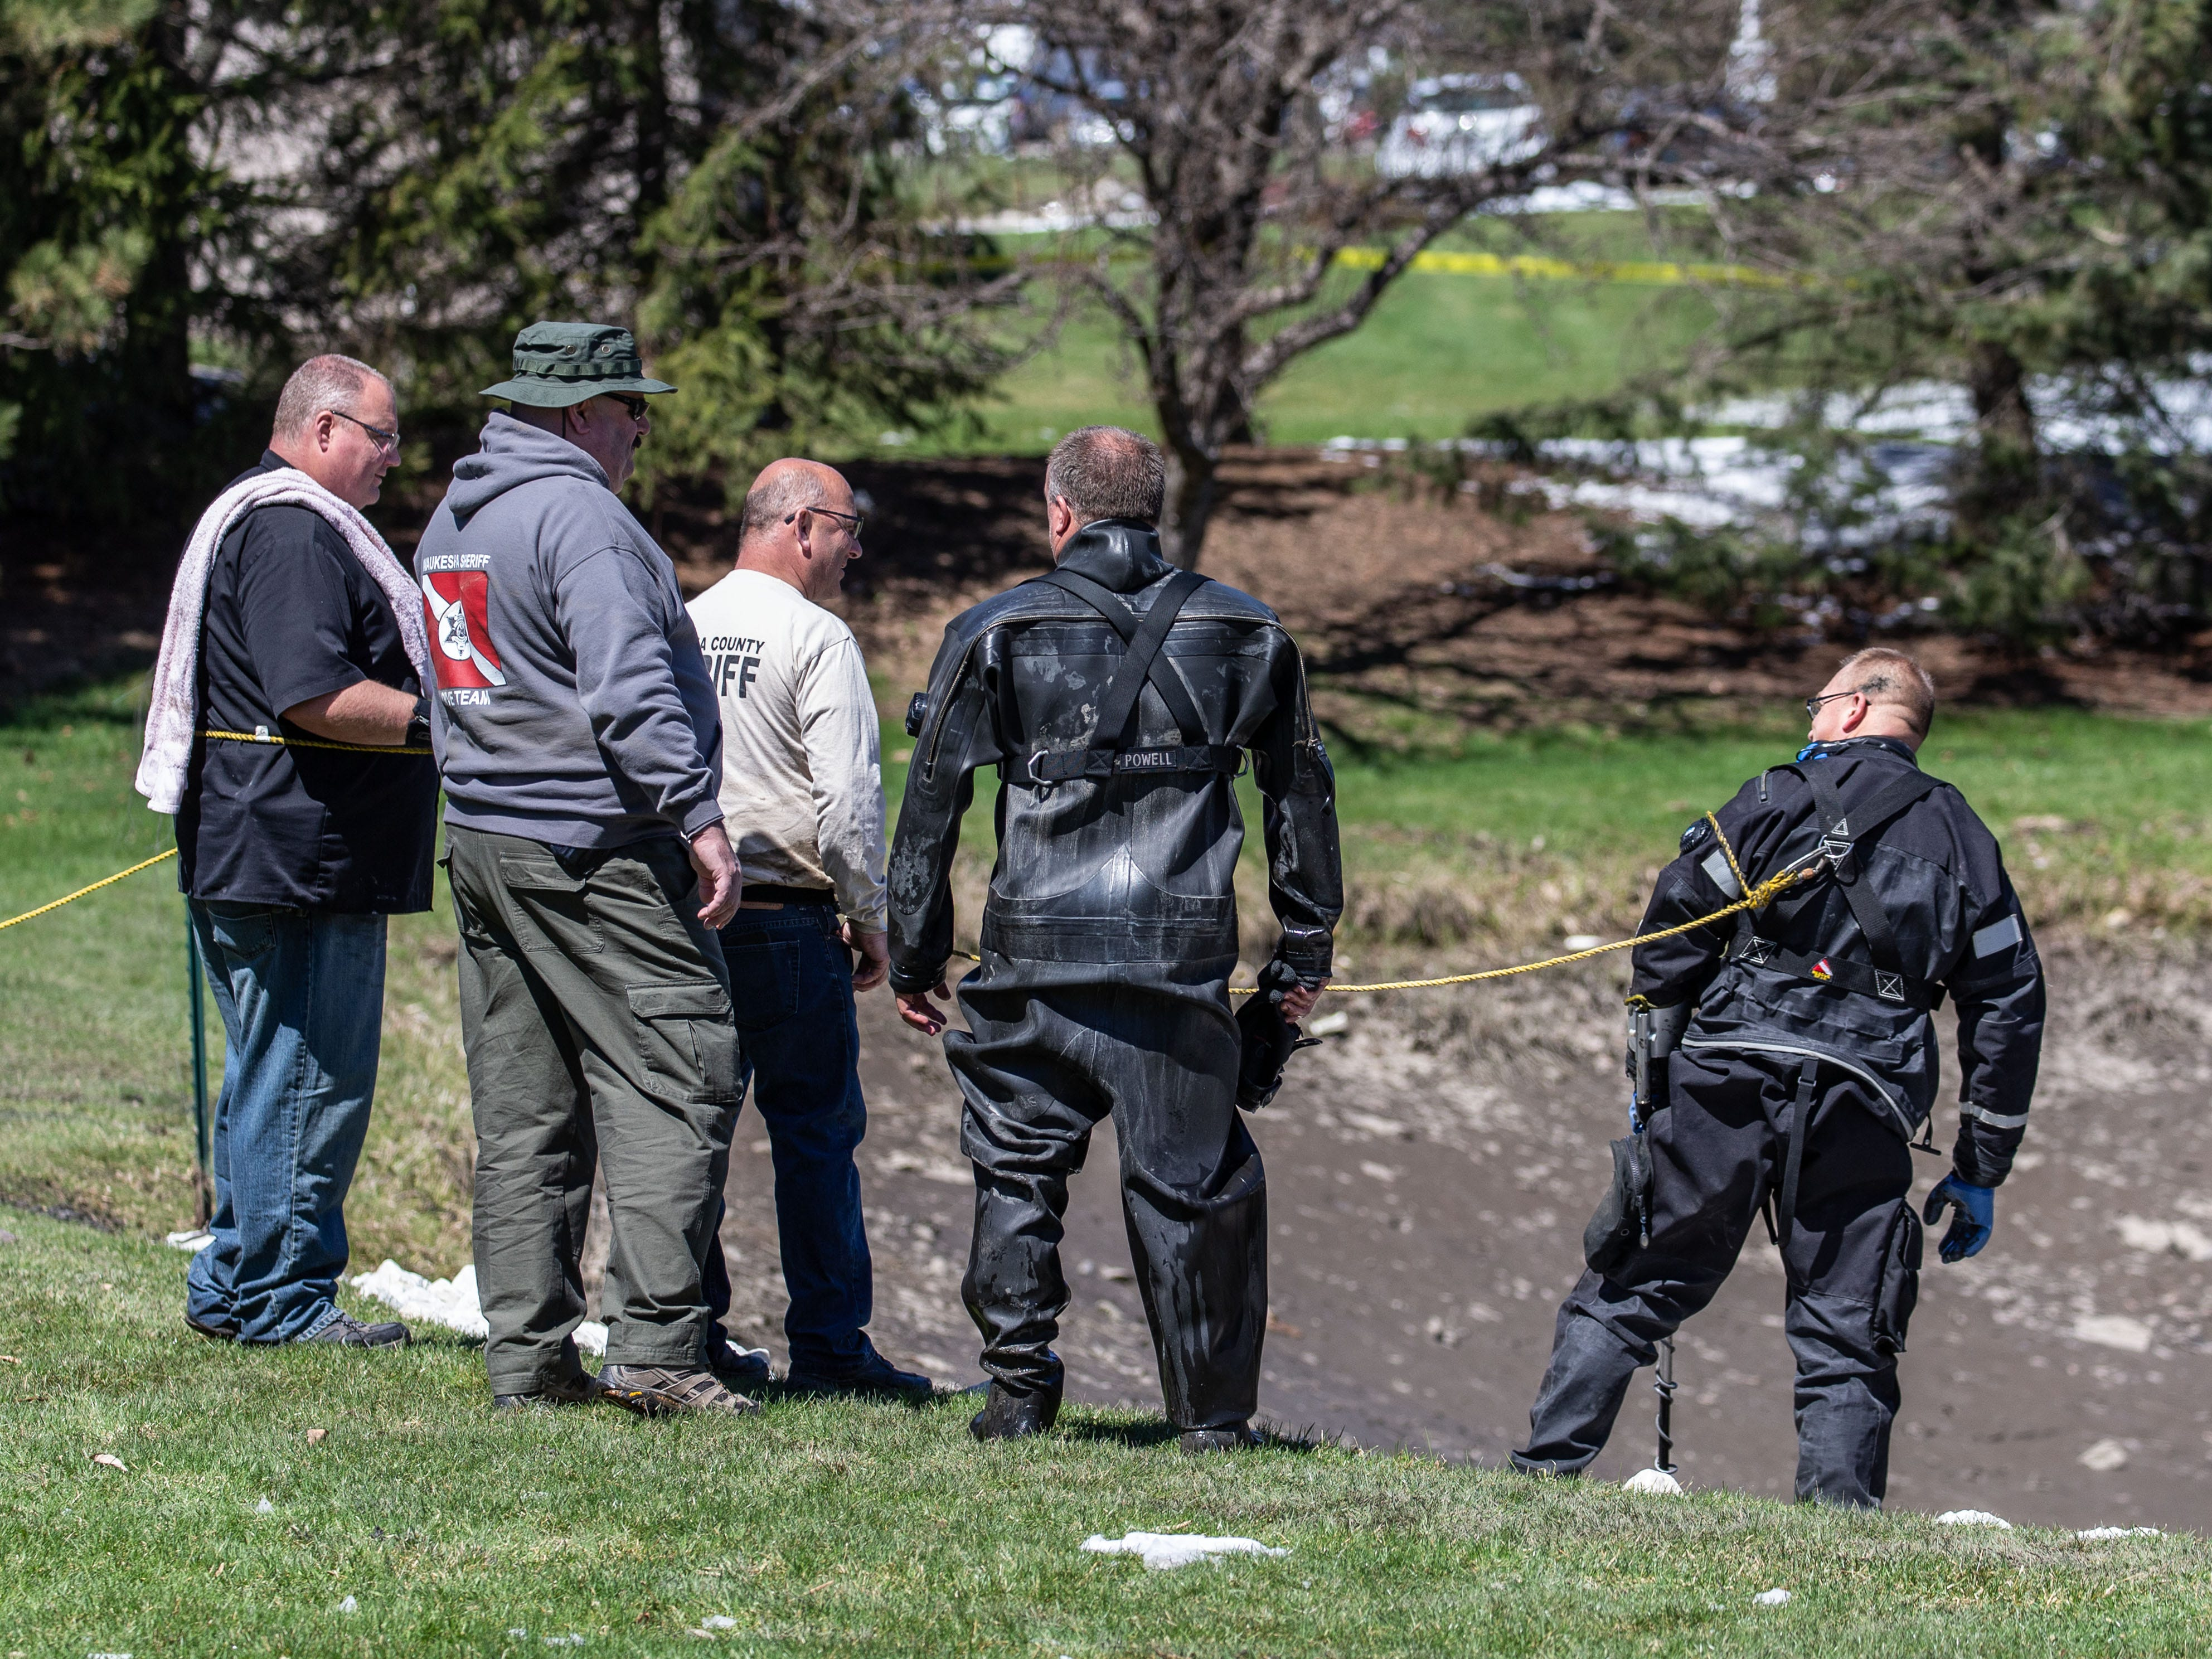 Members of the Waukesha County Sheriff's Dive Team assist the Town of Brookfield Police as they search for evidence in a drained pond at the Brookfield Lake Condominiums on Monday, April 15, 2019. The search is related to a November homicide.